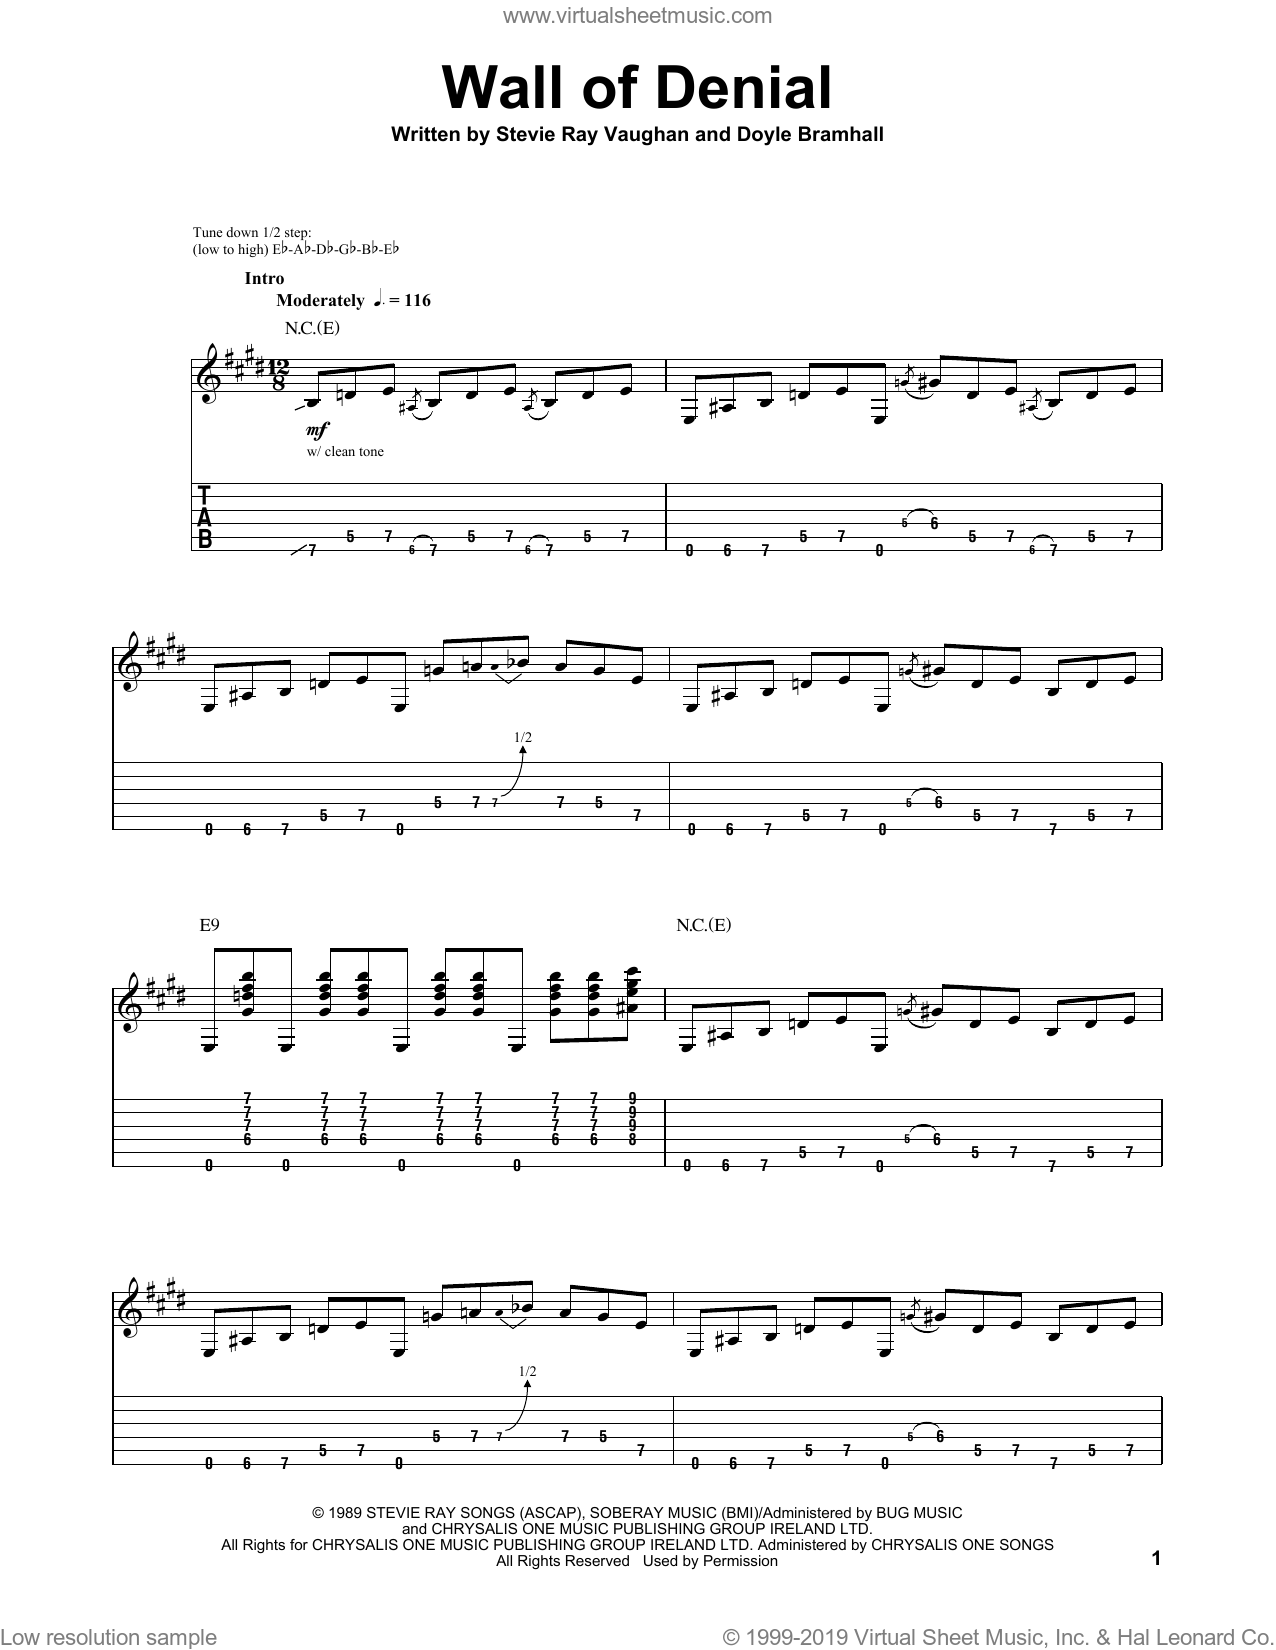 Wall Of Denial sheet music for guitar (tablature, play-along) by Stevie Ray Vaughan and Doyle Bramhall. Score Image Preview.